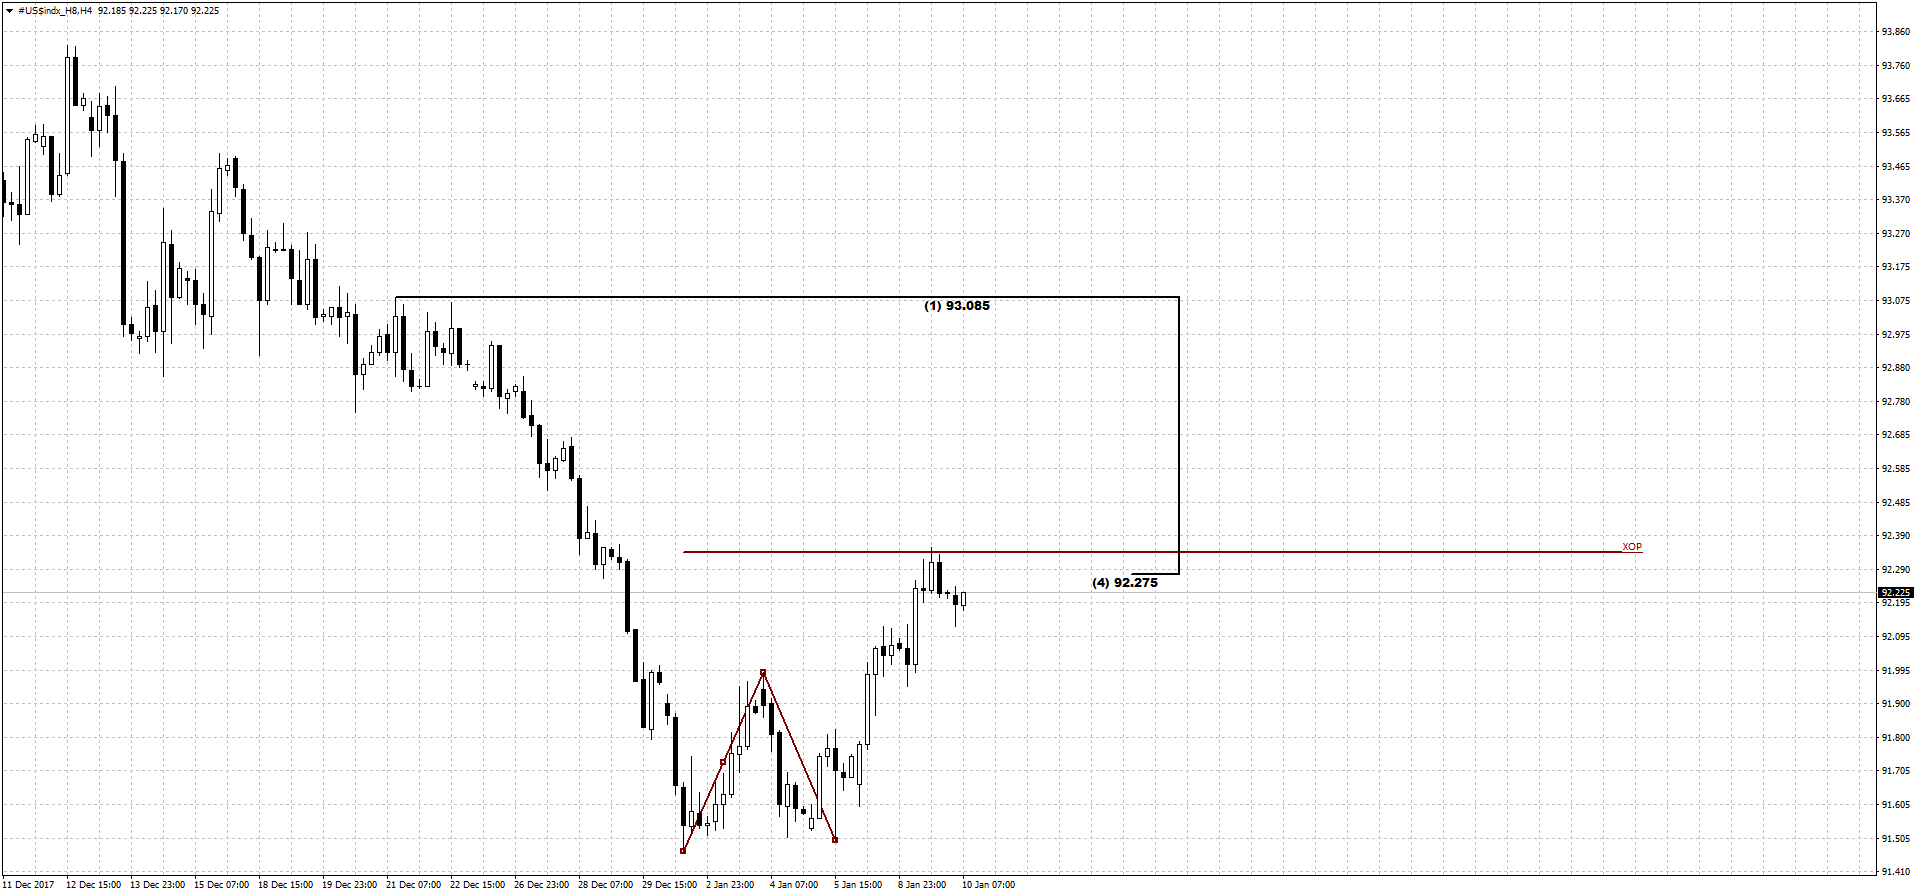 dxy_4h_10_01_18.